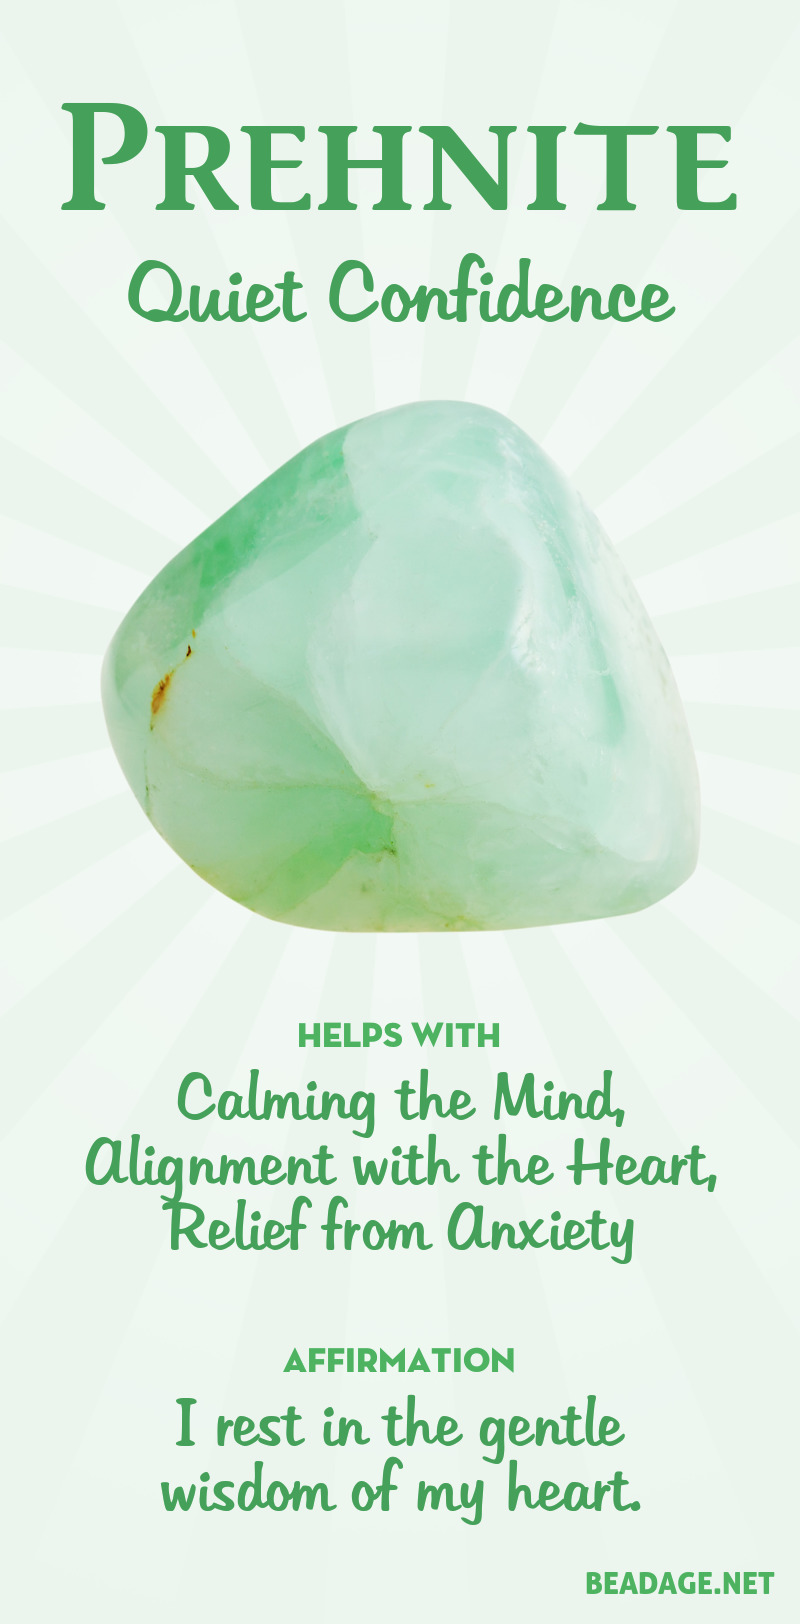 Prehnite harmonizes the will and the heart, leading to a quiet confidence and clarity in the right action to take to be in alignment with one's spiritual self. Through quieting the mind and ego, it can assist in the ability to hear through your psychic channels more clearly. Learn more about Prehnite meaning + healing properties, benefits & more. Visit to find gemstone meanings & info about crystal healing. #gemstones #crystals #crystalhealing #beadage